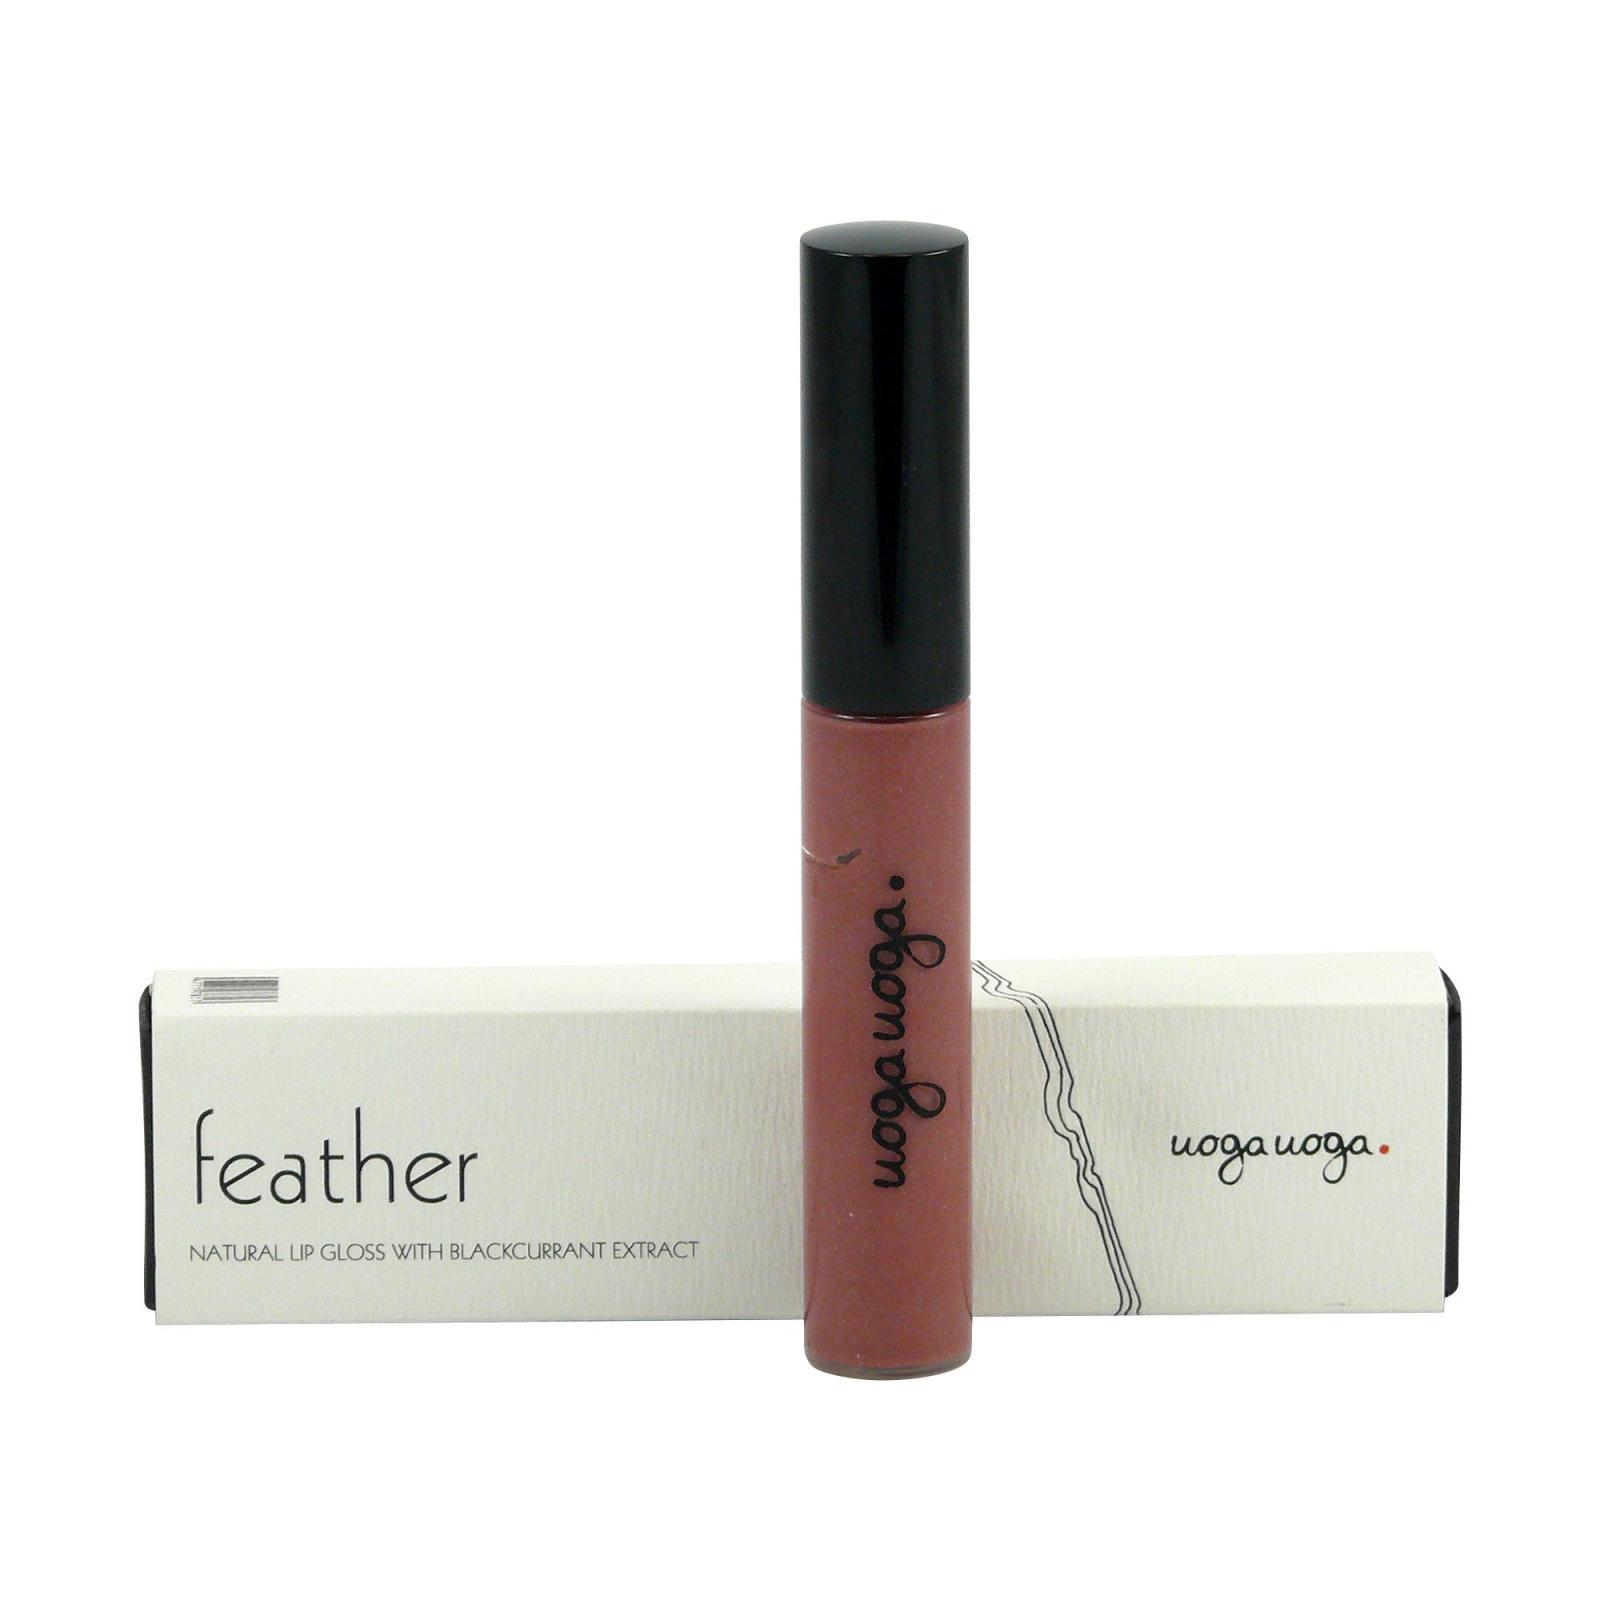 Uoga Uoga Lesk na rty 623 Feather 7 ml